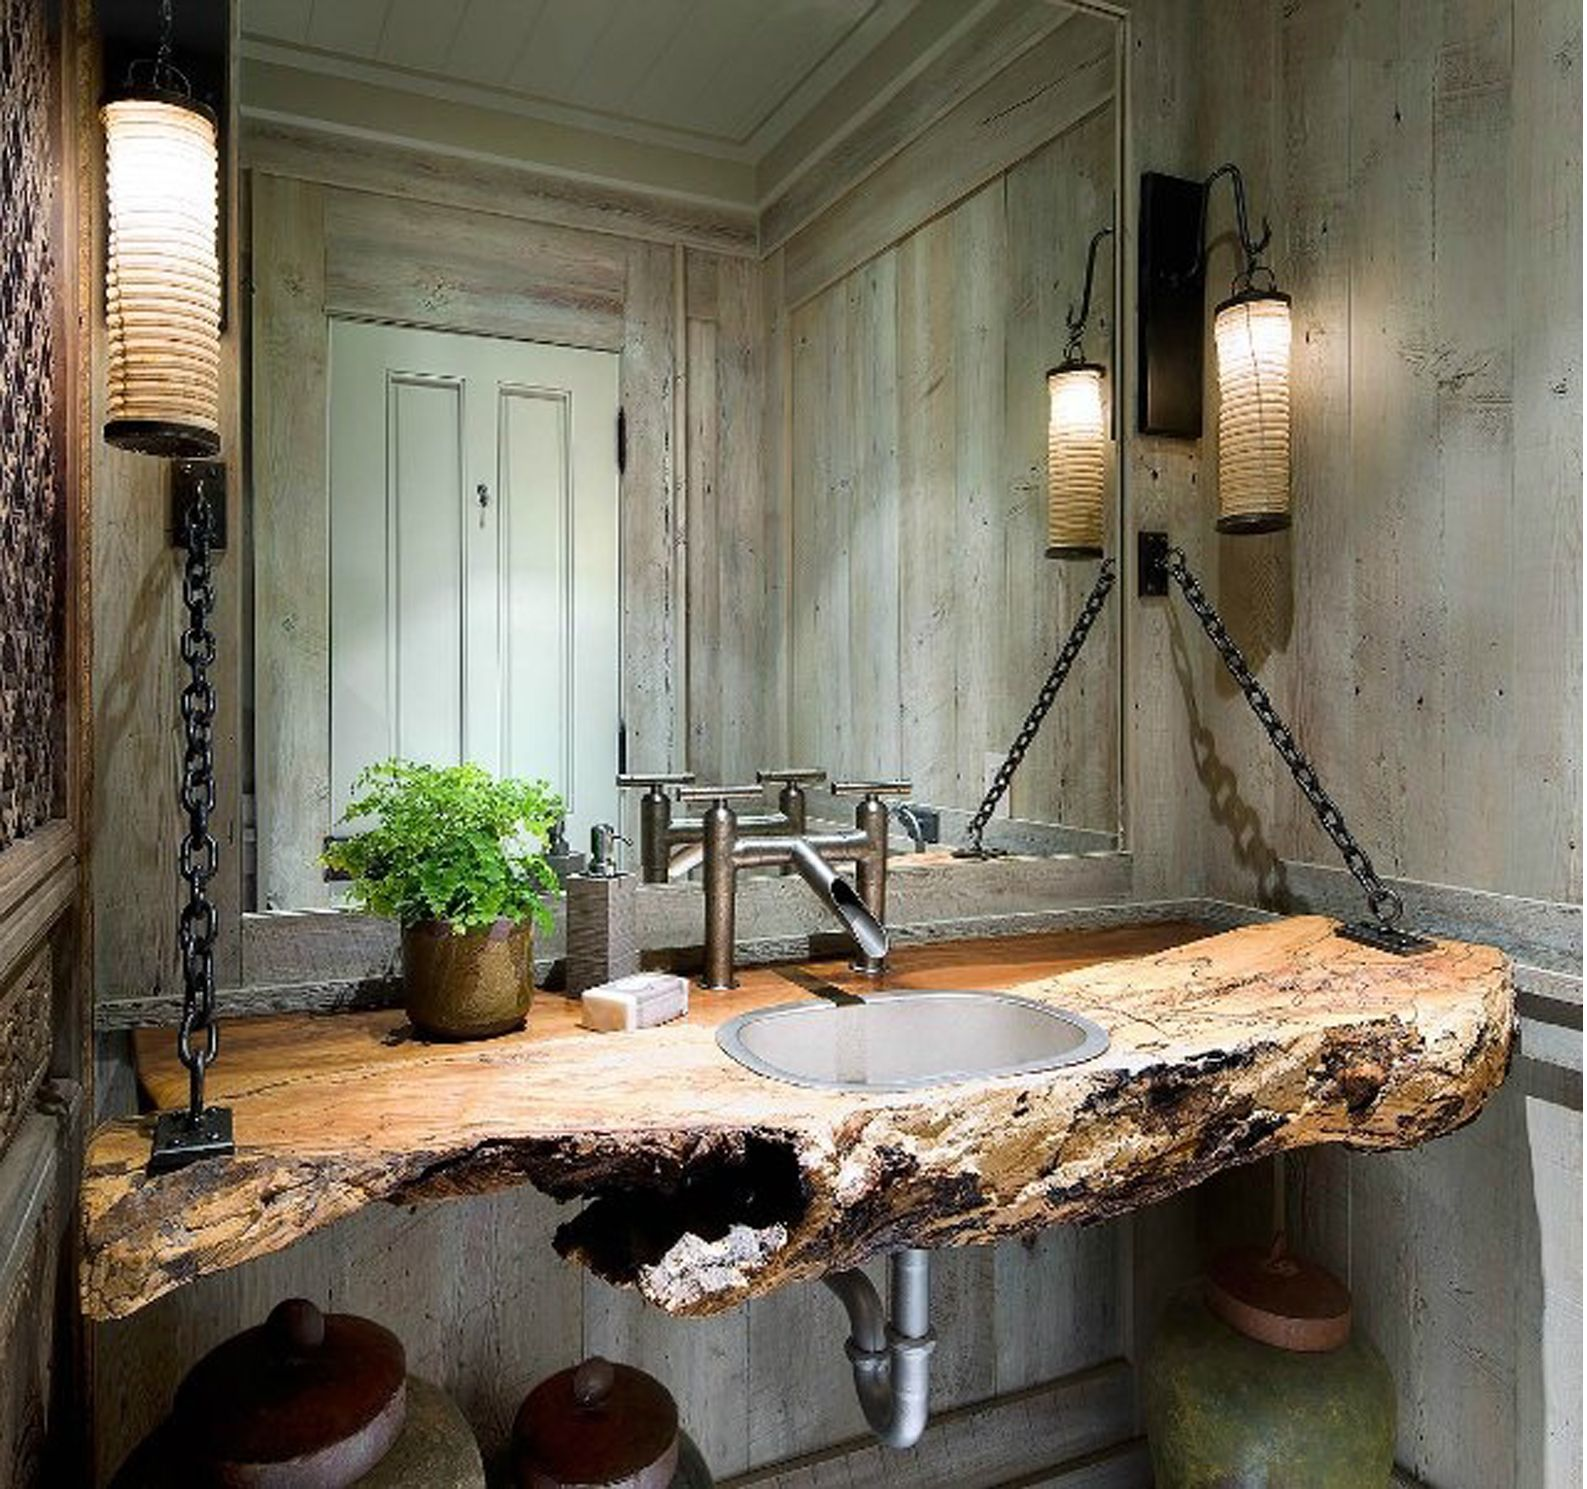 Wood Log As Bathroom Sink Recyclart